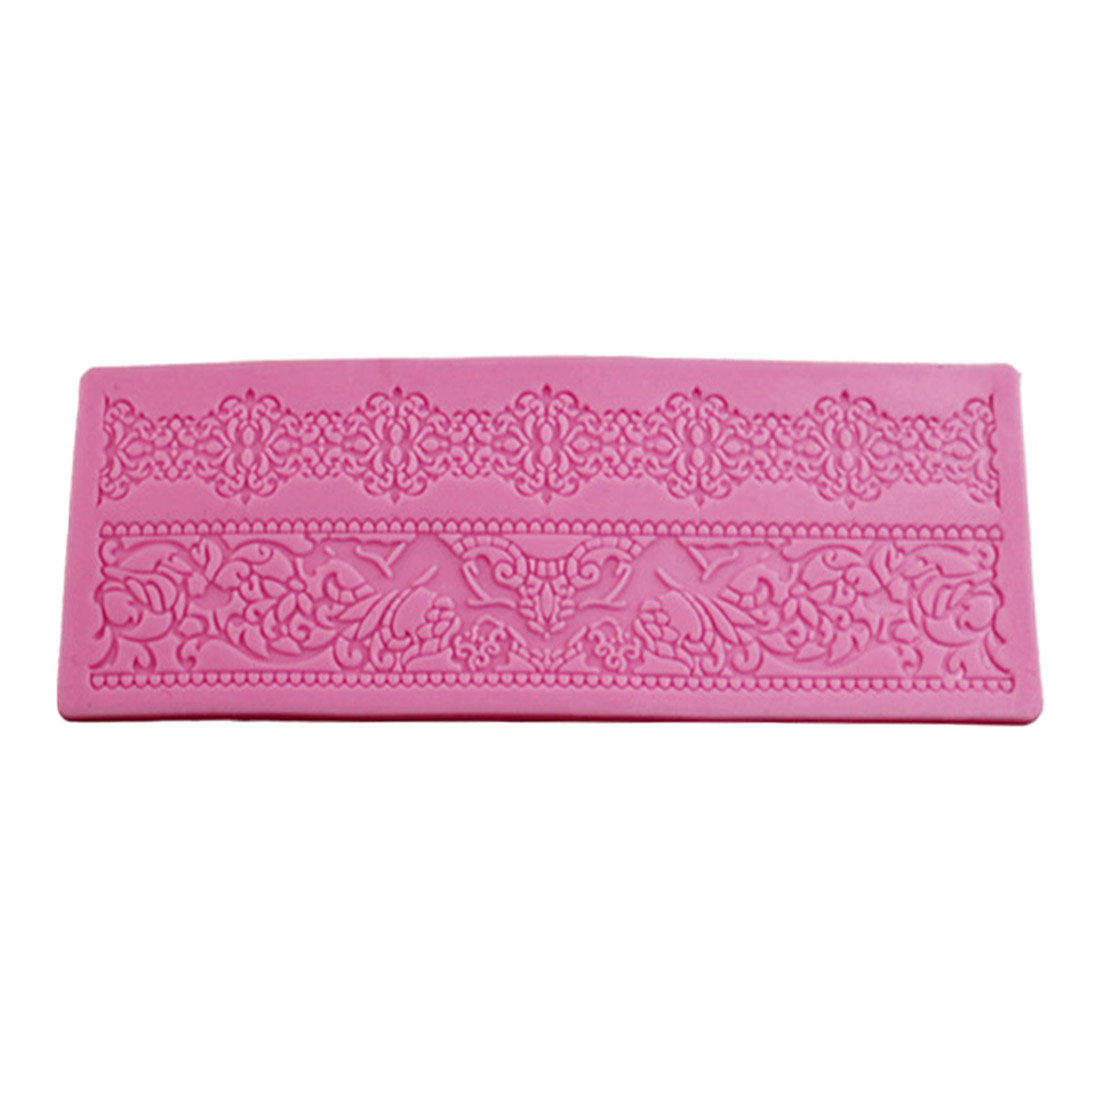 Delicious 17.5 X 6.2 X 0.4cm Cake Gum Paste Decorating Diy Mould Lace Silicone Fondant Embossing Mold Relieving Rheumatism And Cold Home & Garden Bakeware